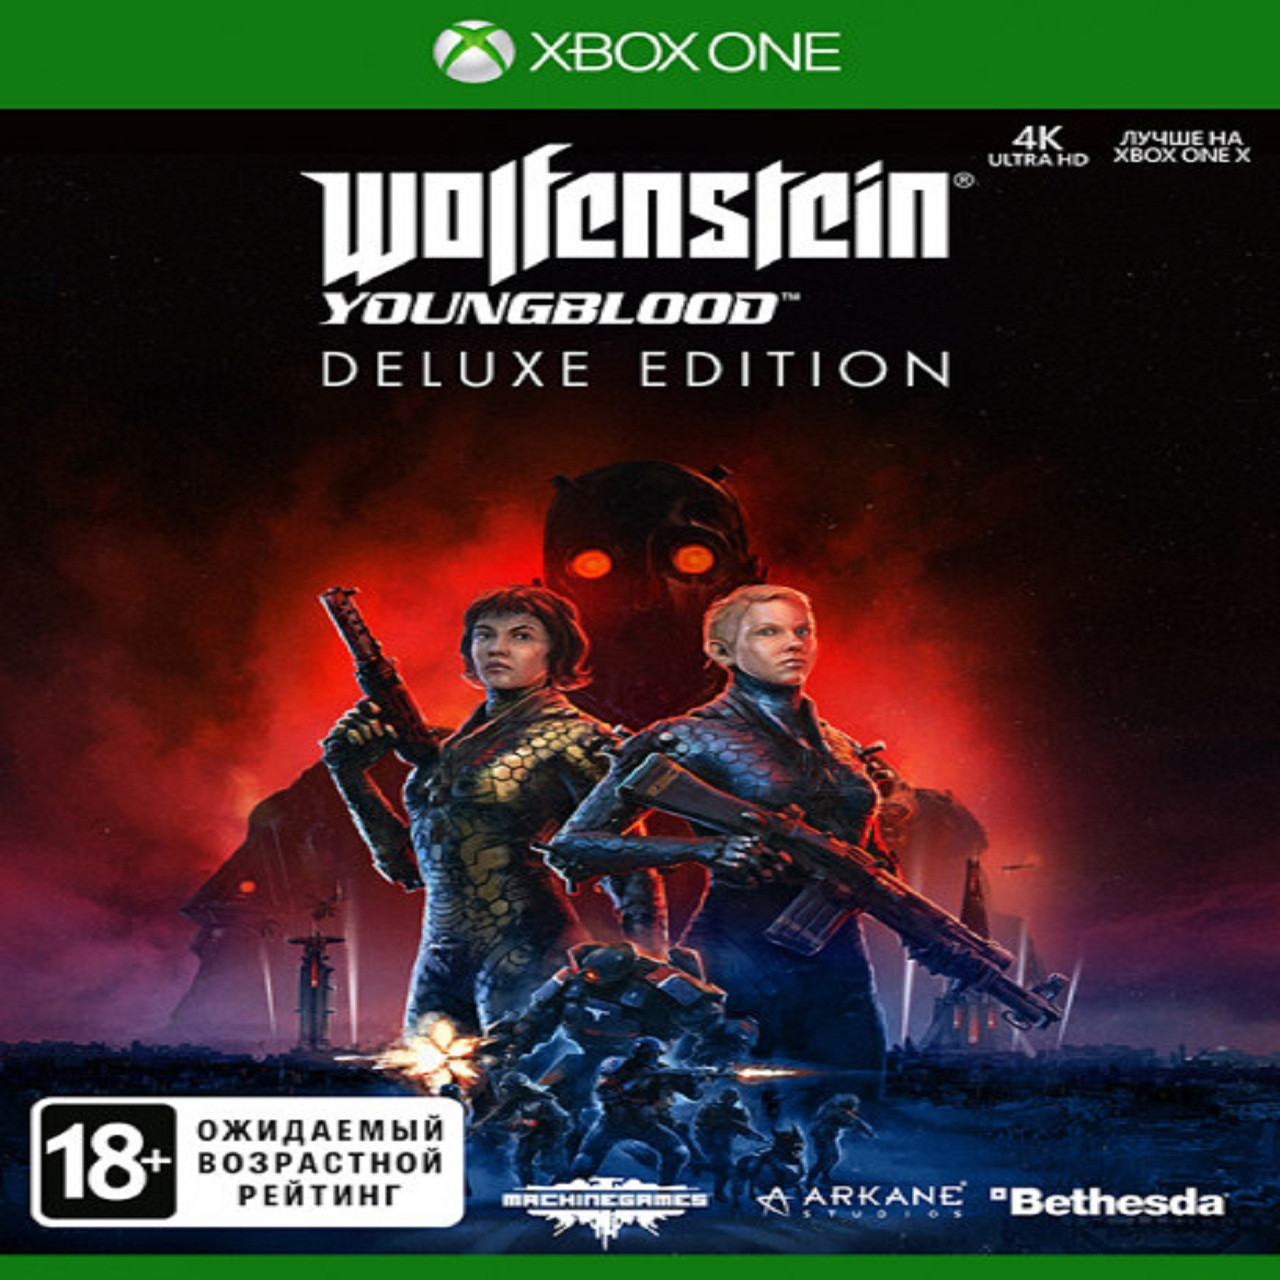 Wolfenstein: Youngblood Deluxe Edition RUS Xbox One (NEW)